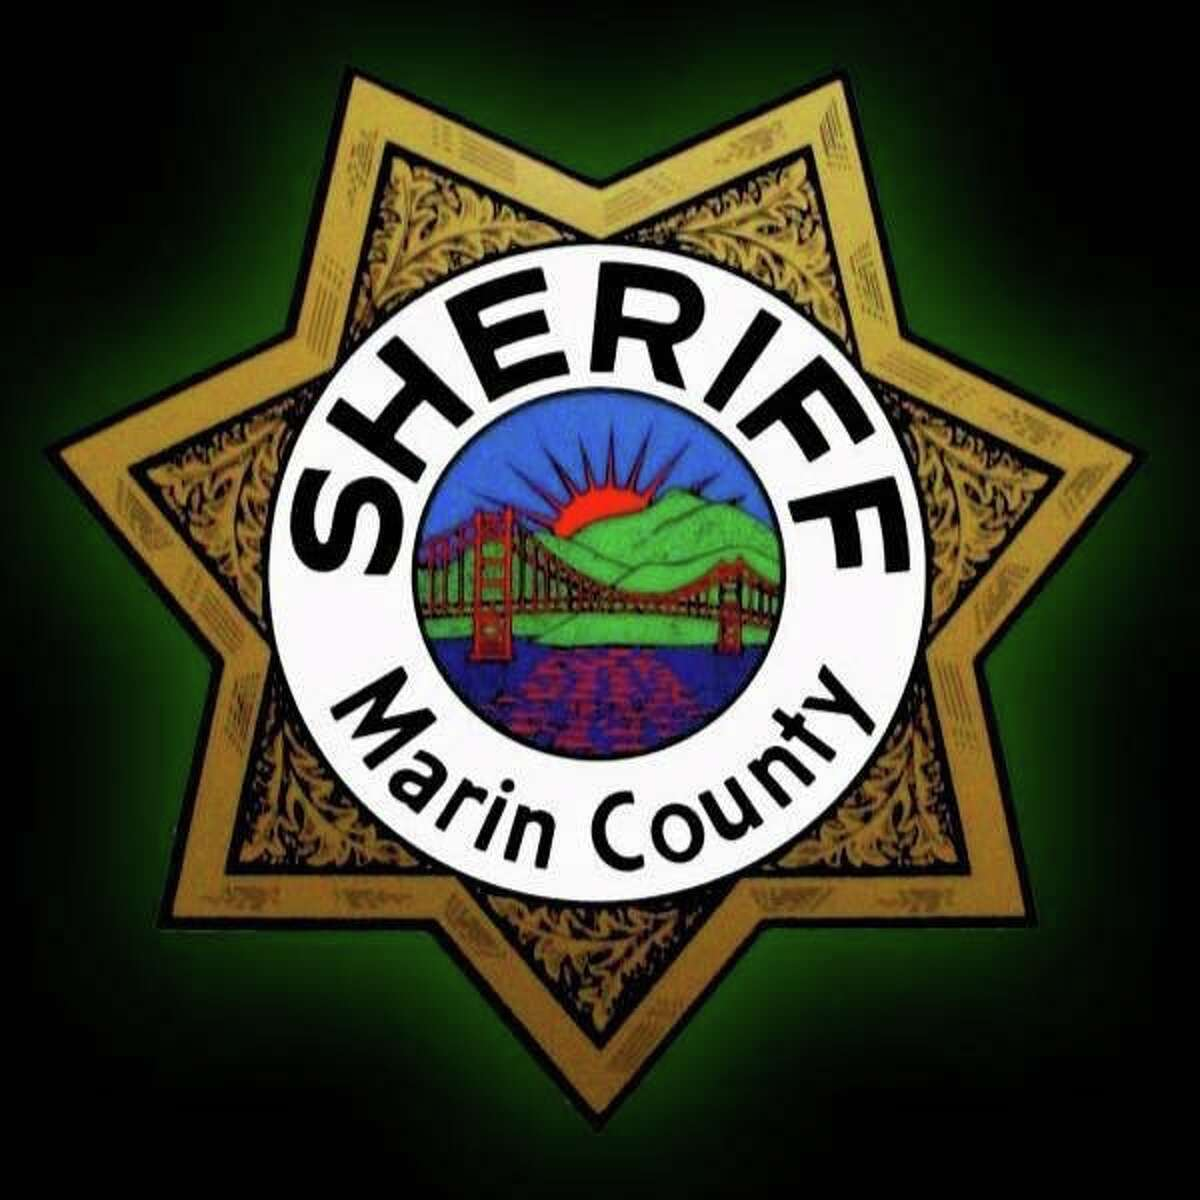 An incarcerated man was found dead inside his cell in the Marin County Jail. The San Rafael Police Department is investigating the incident.